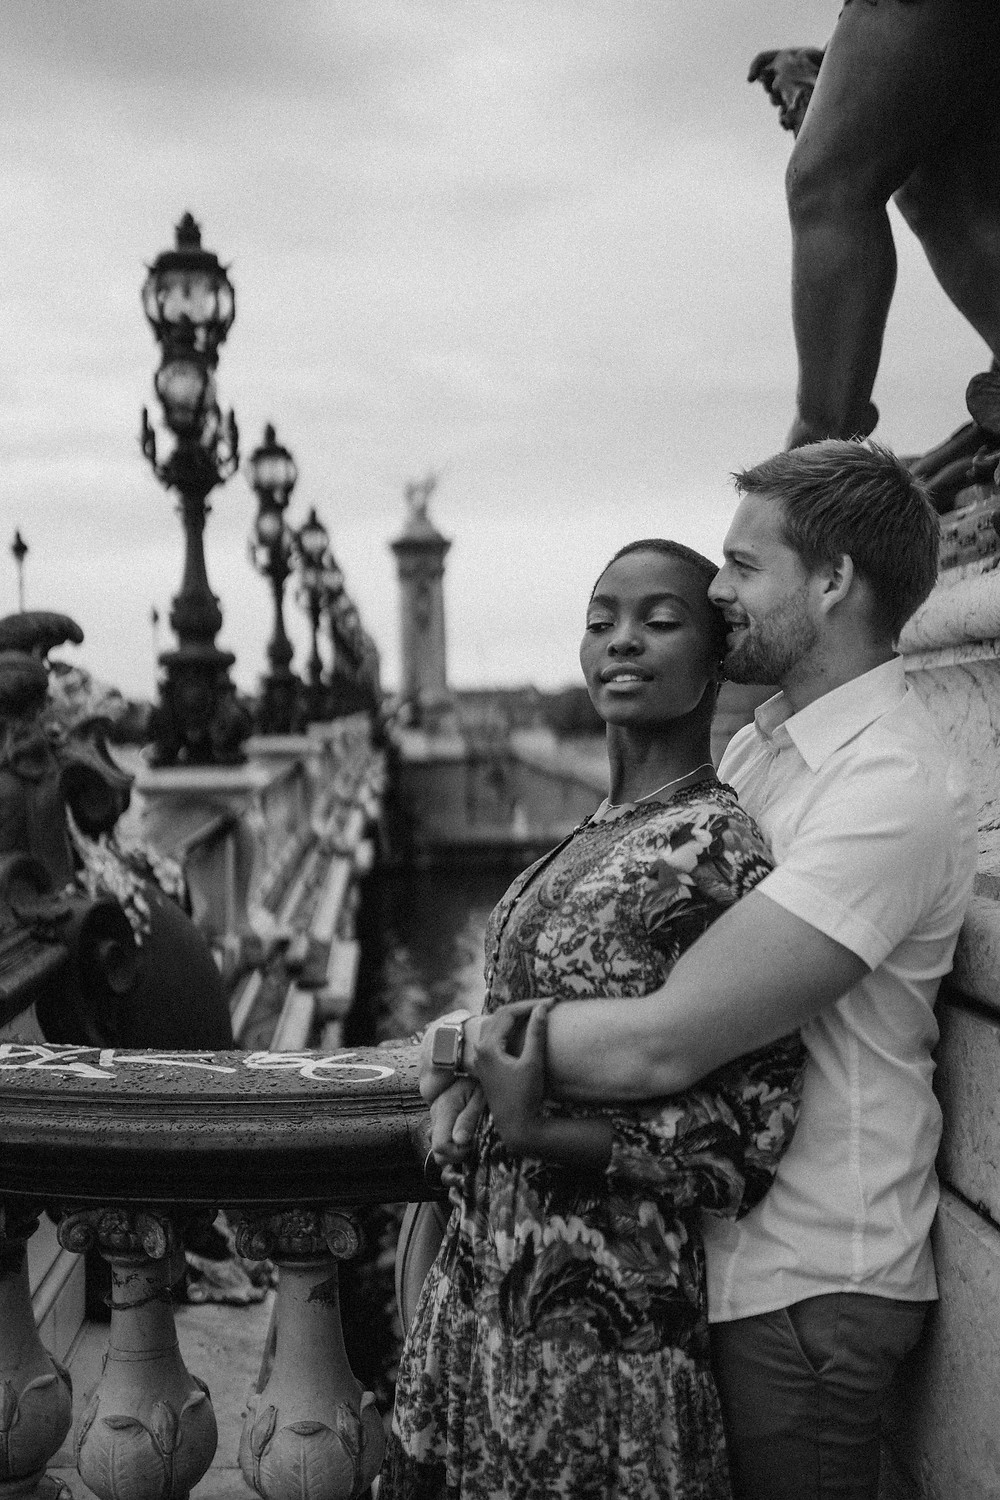 Interracial Couple Photo black and white at pont de alexander III